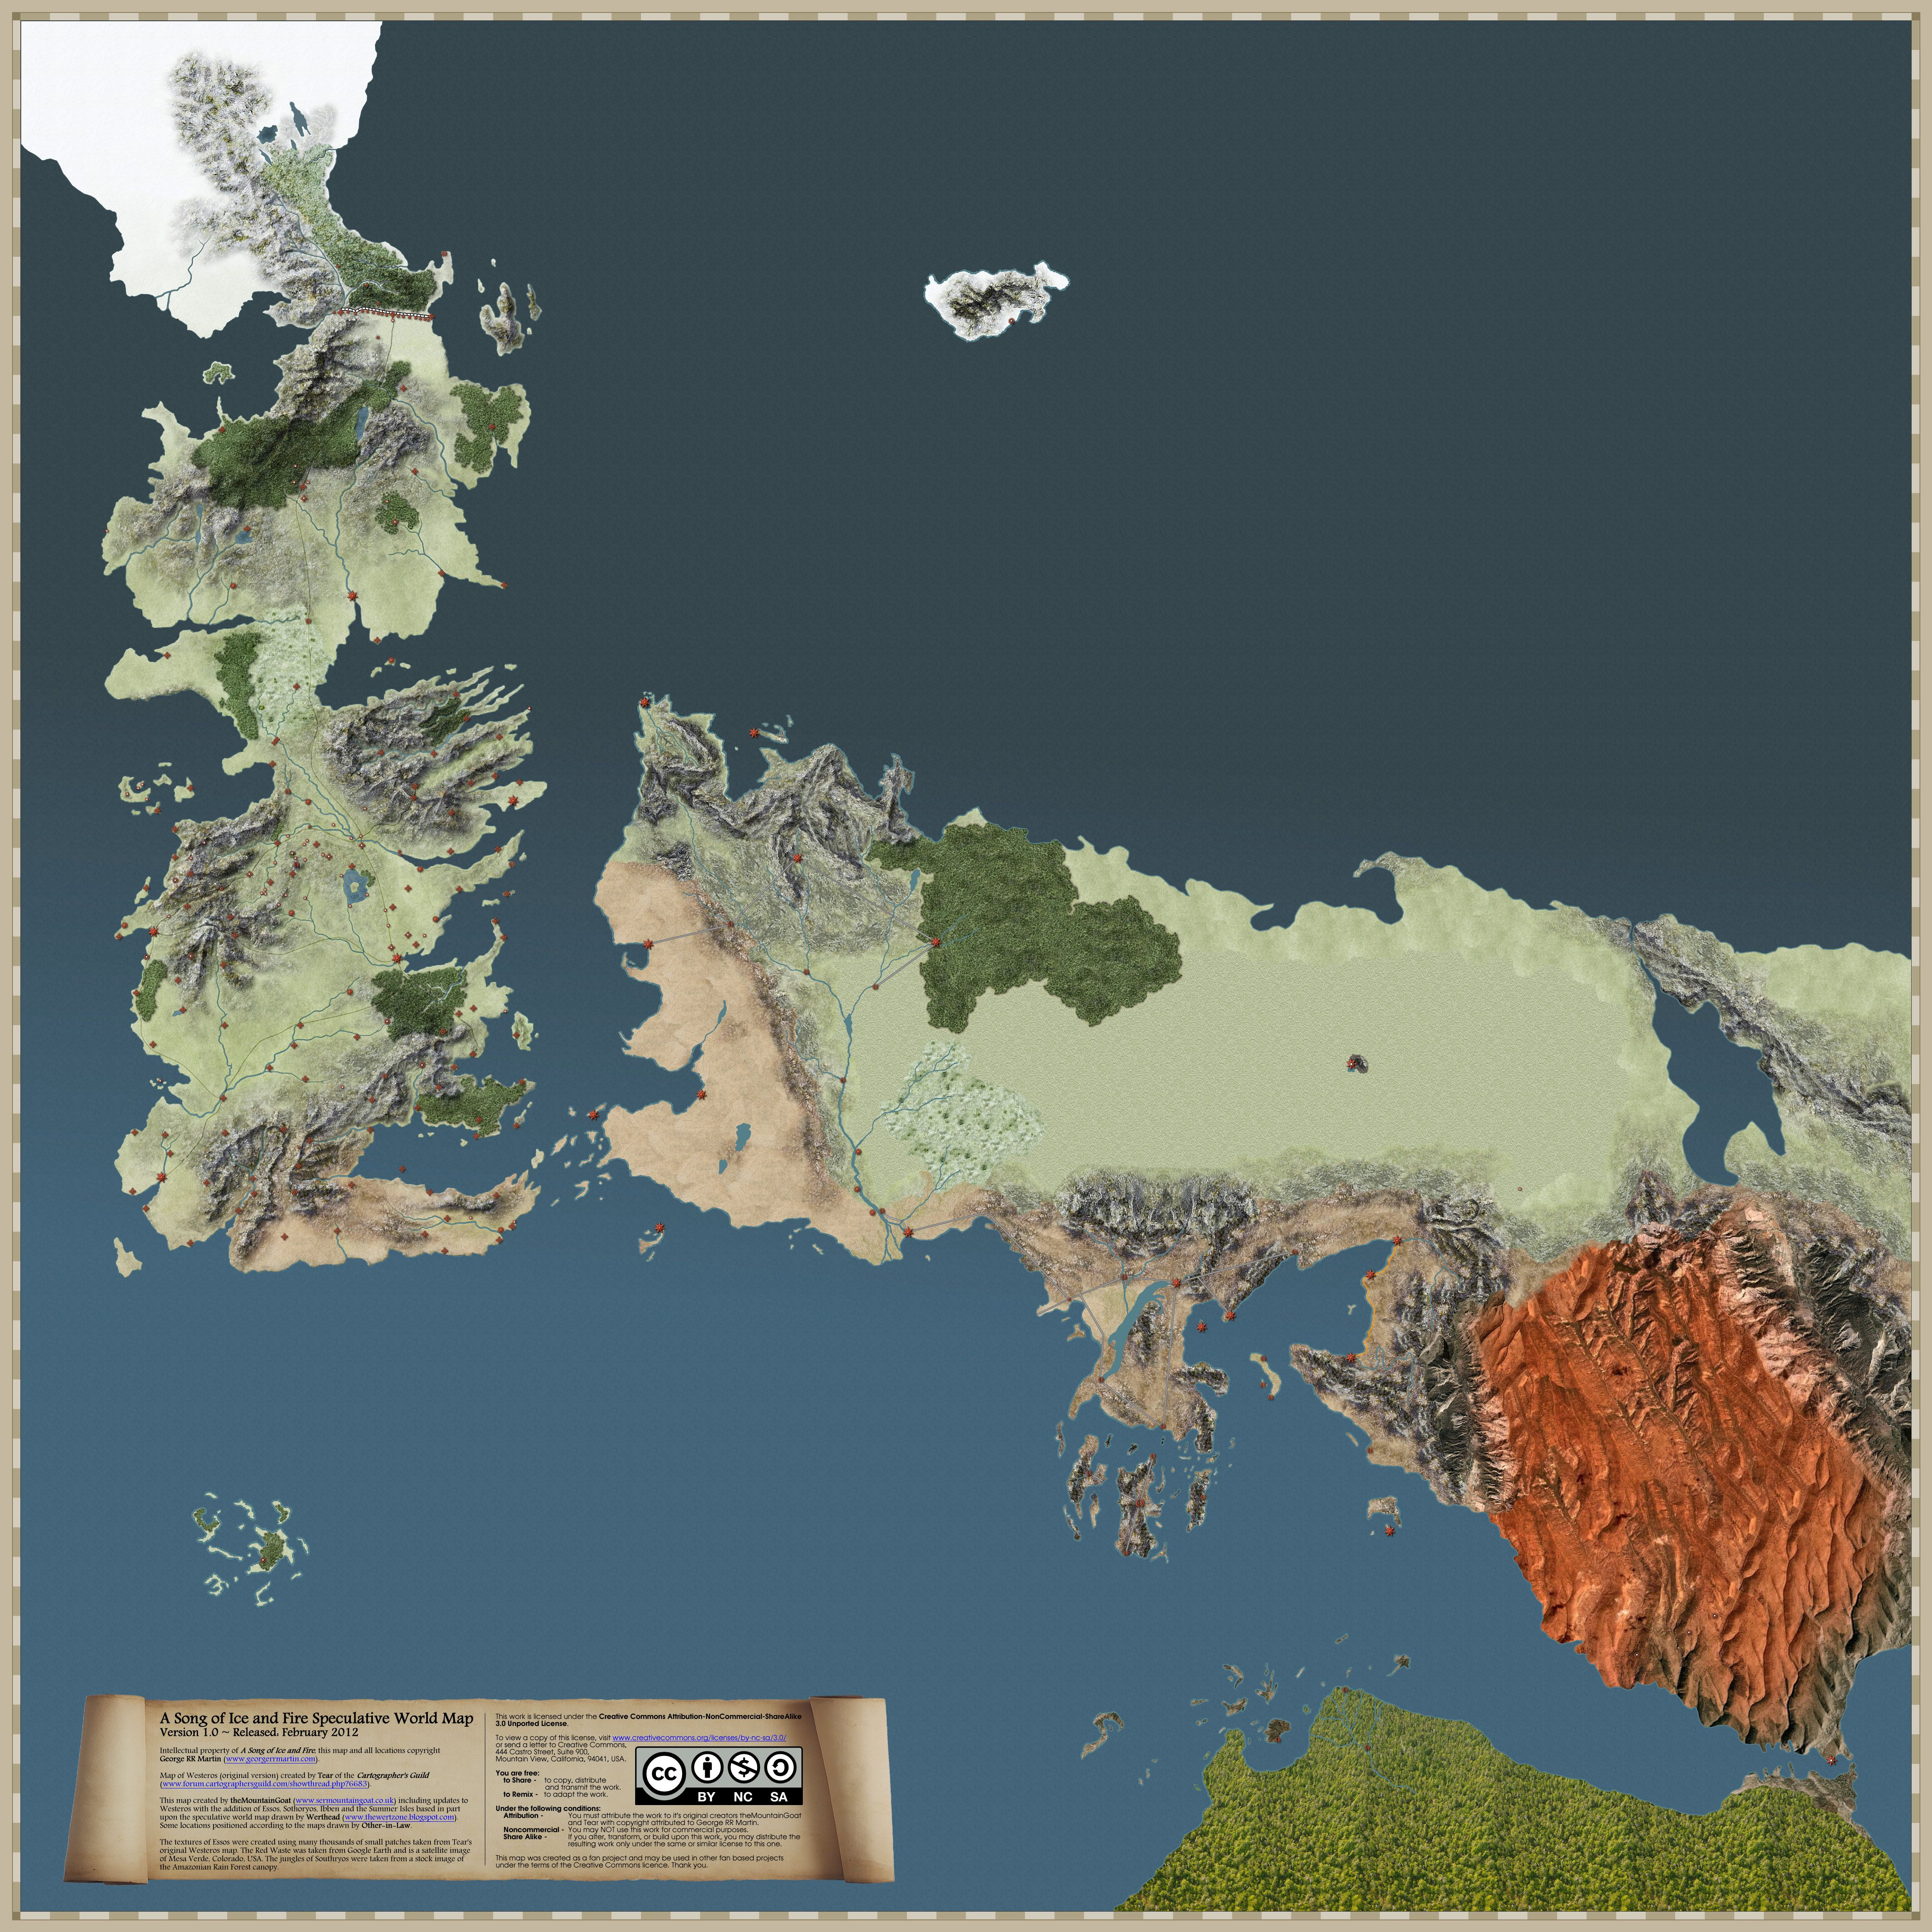 Song of ice and fire speculative world map a song of ice and song of ice and fire speculative world map gumiabroncs Image collections